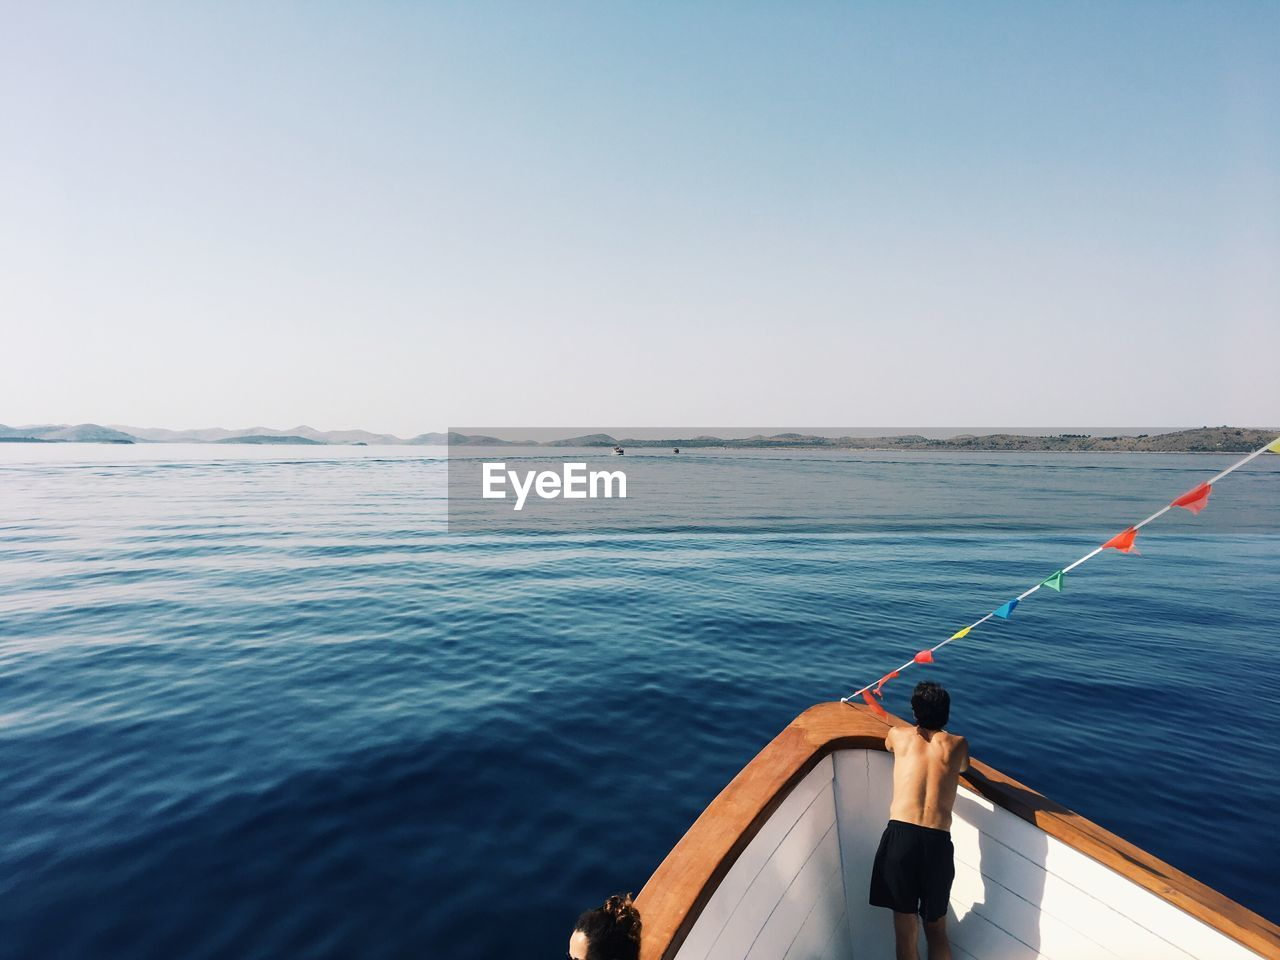 Rear View Of Shirtless Man Standing In Boat On Sea Against Clear Sky